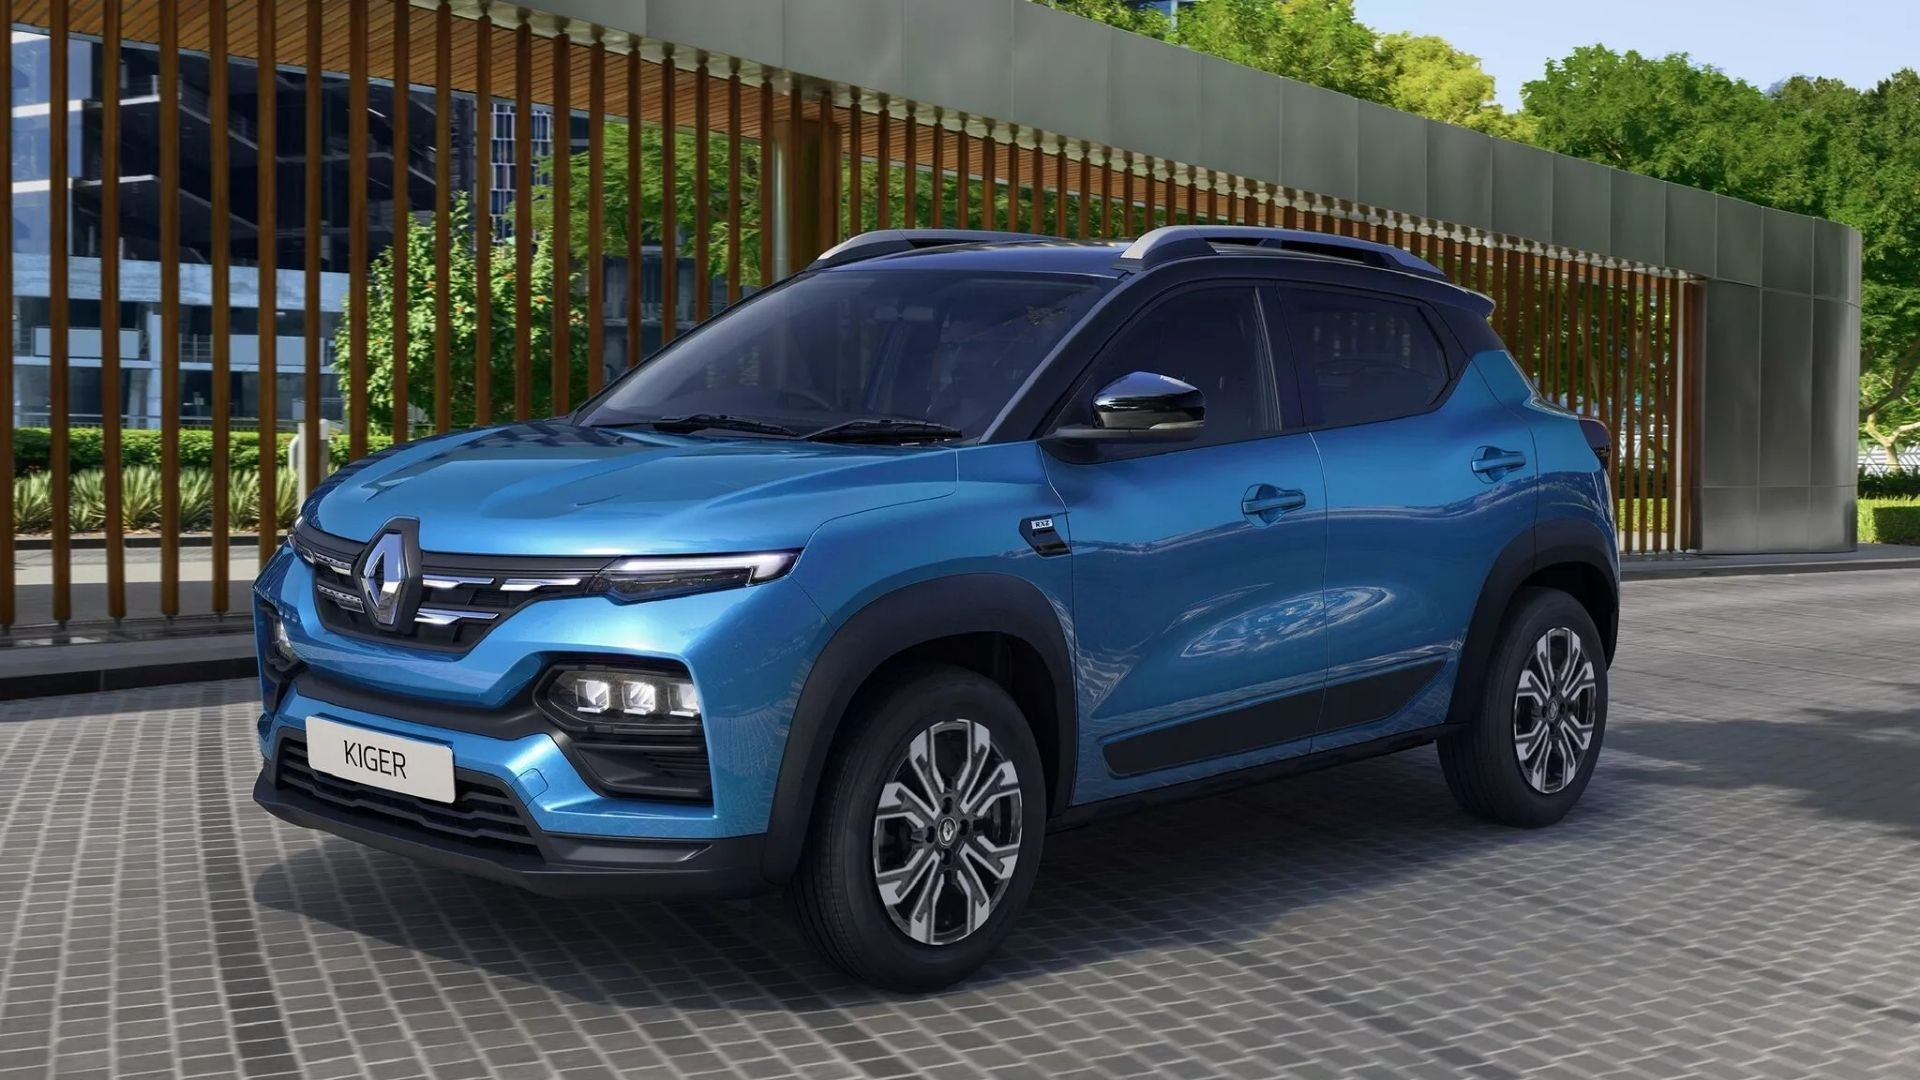 Renault Kiger SUV Unveiled in India